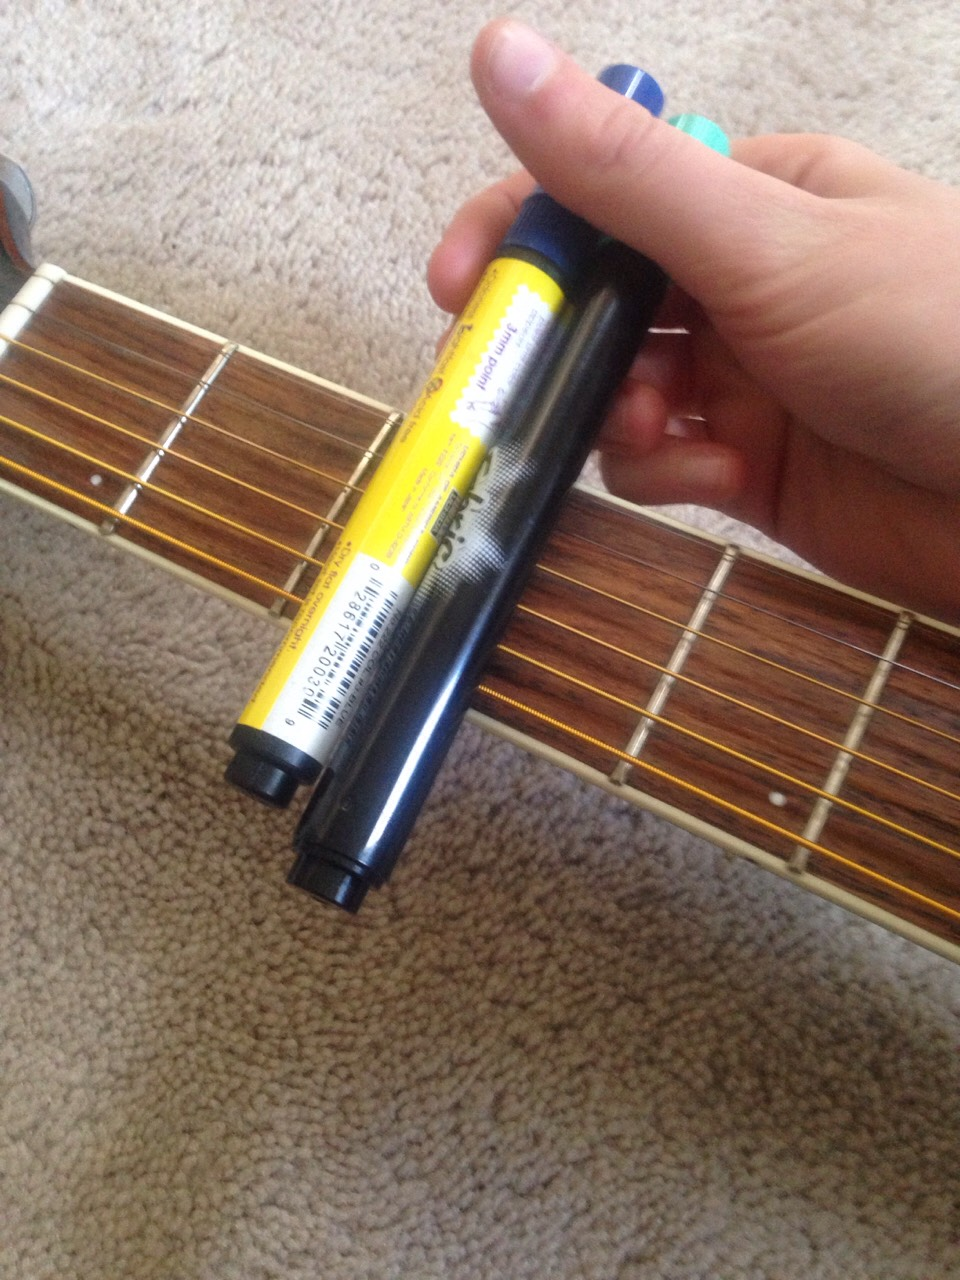 Place however many markers you need on the fret board